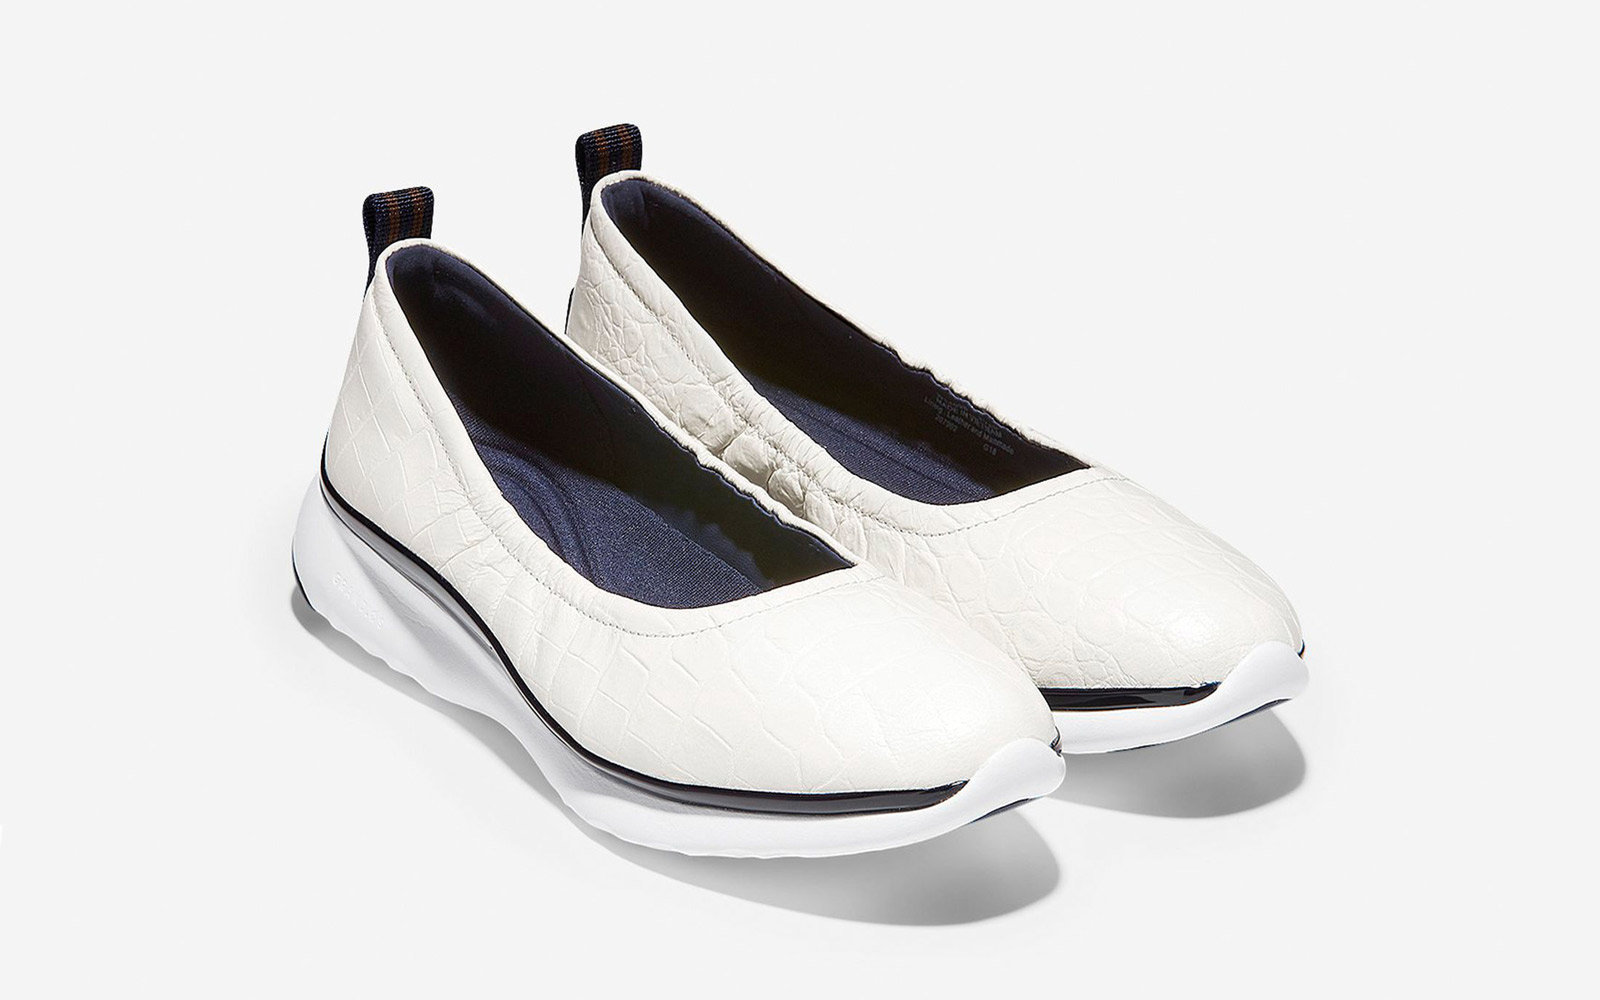 ebcb85f9955 The Best Comfortable (and Cute) Flats for Travel